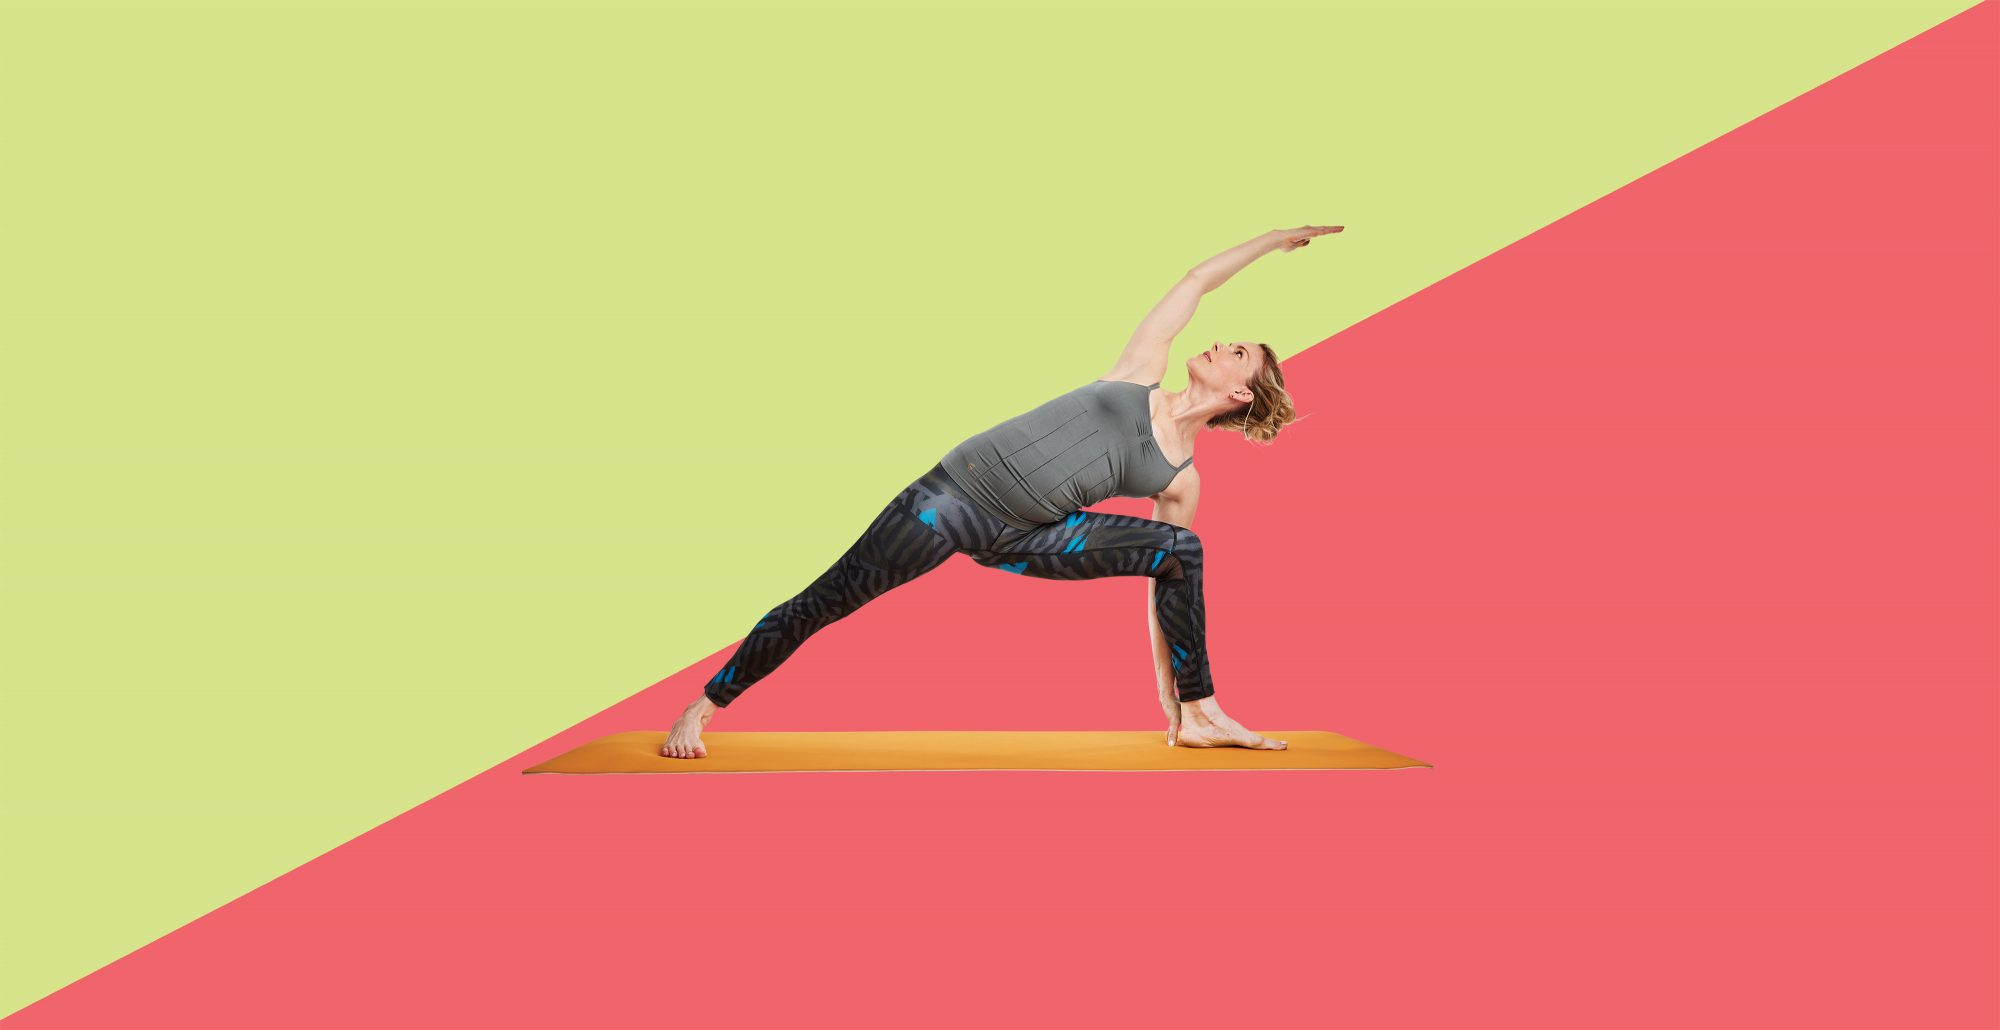 extended-side-angle-yoga-moves-happier-holiday-mcgee